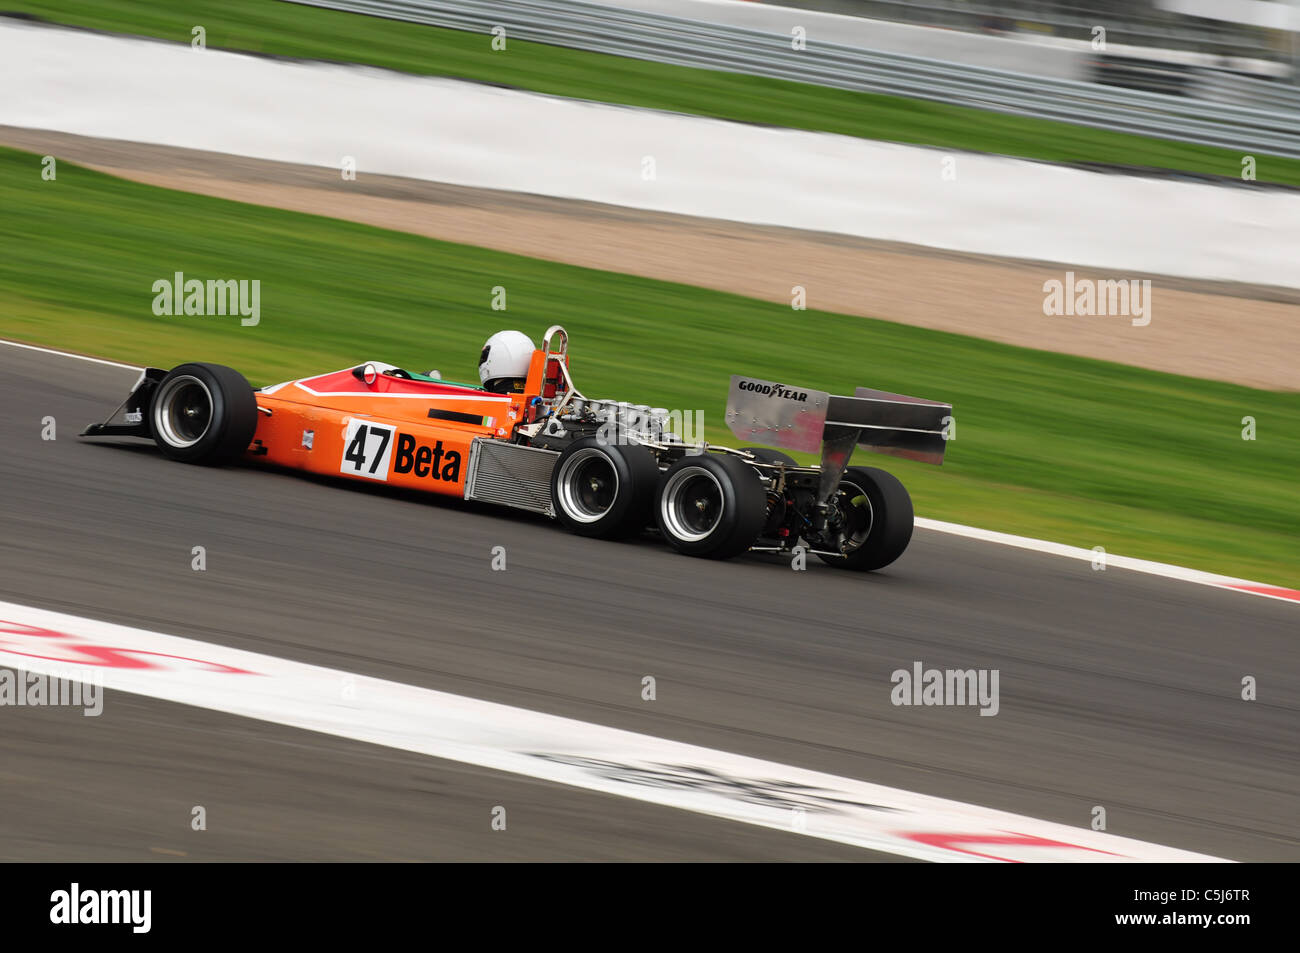 Jeremy Smith - 1976 March 2-4-0 - Silverstone Classic - Stock Image